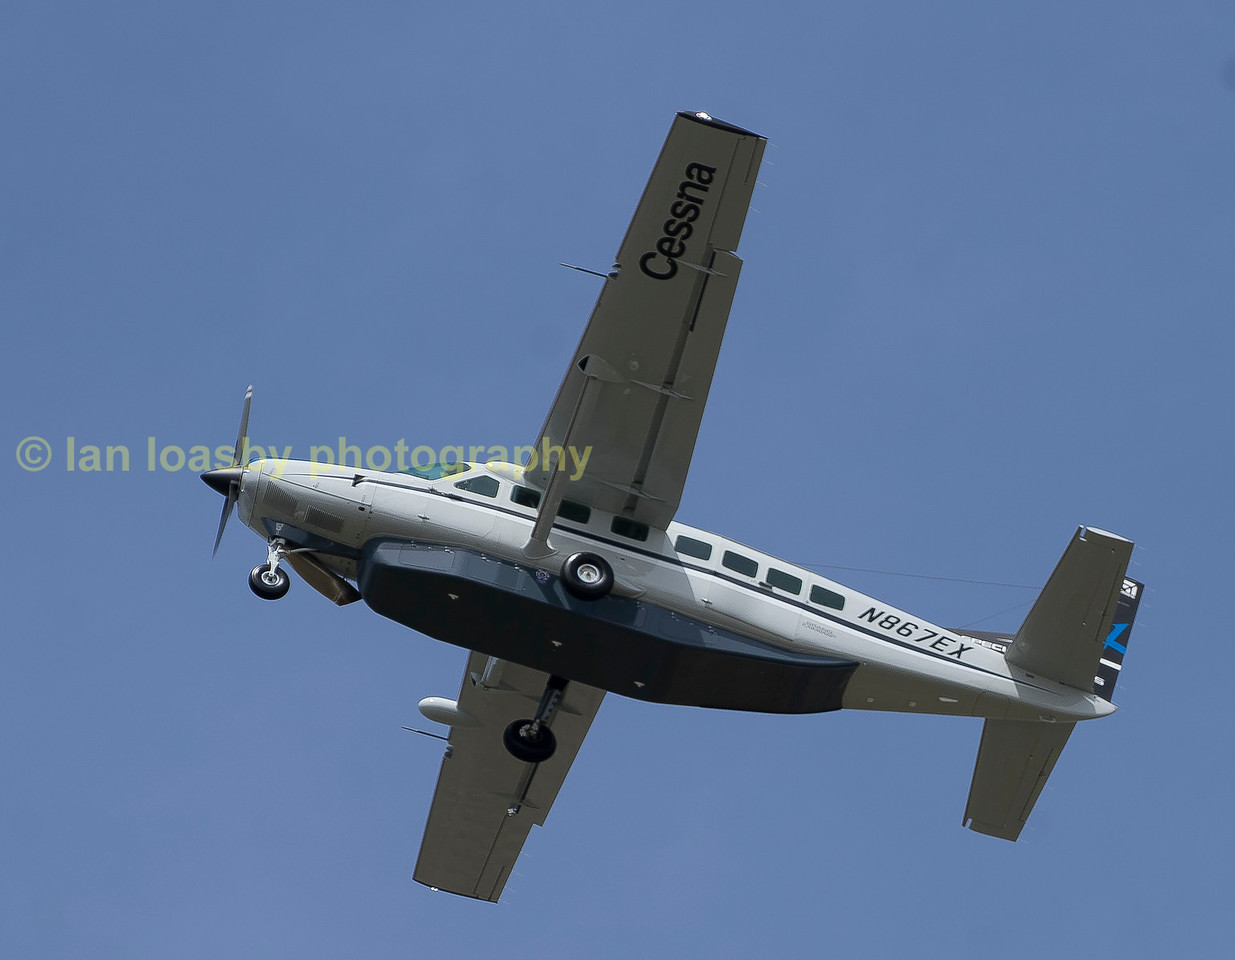 Cessna 208 grand caravan EX owned by Textron Aviation seen departing on monday